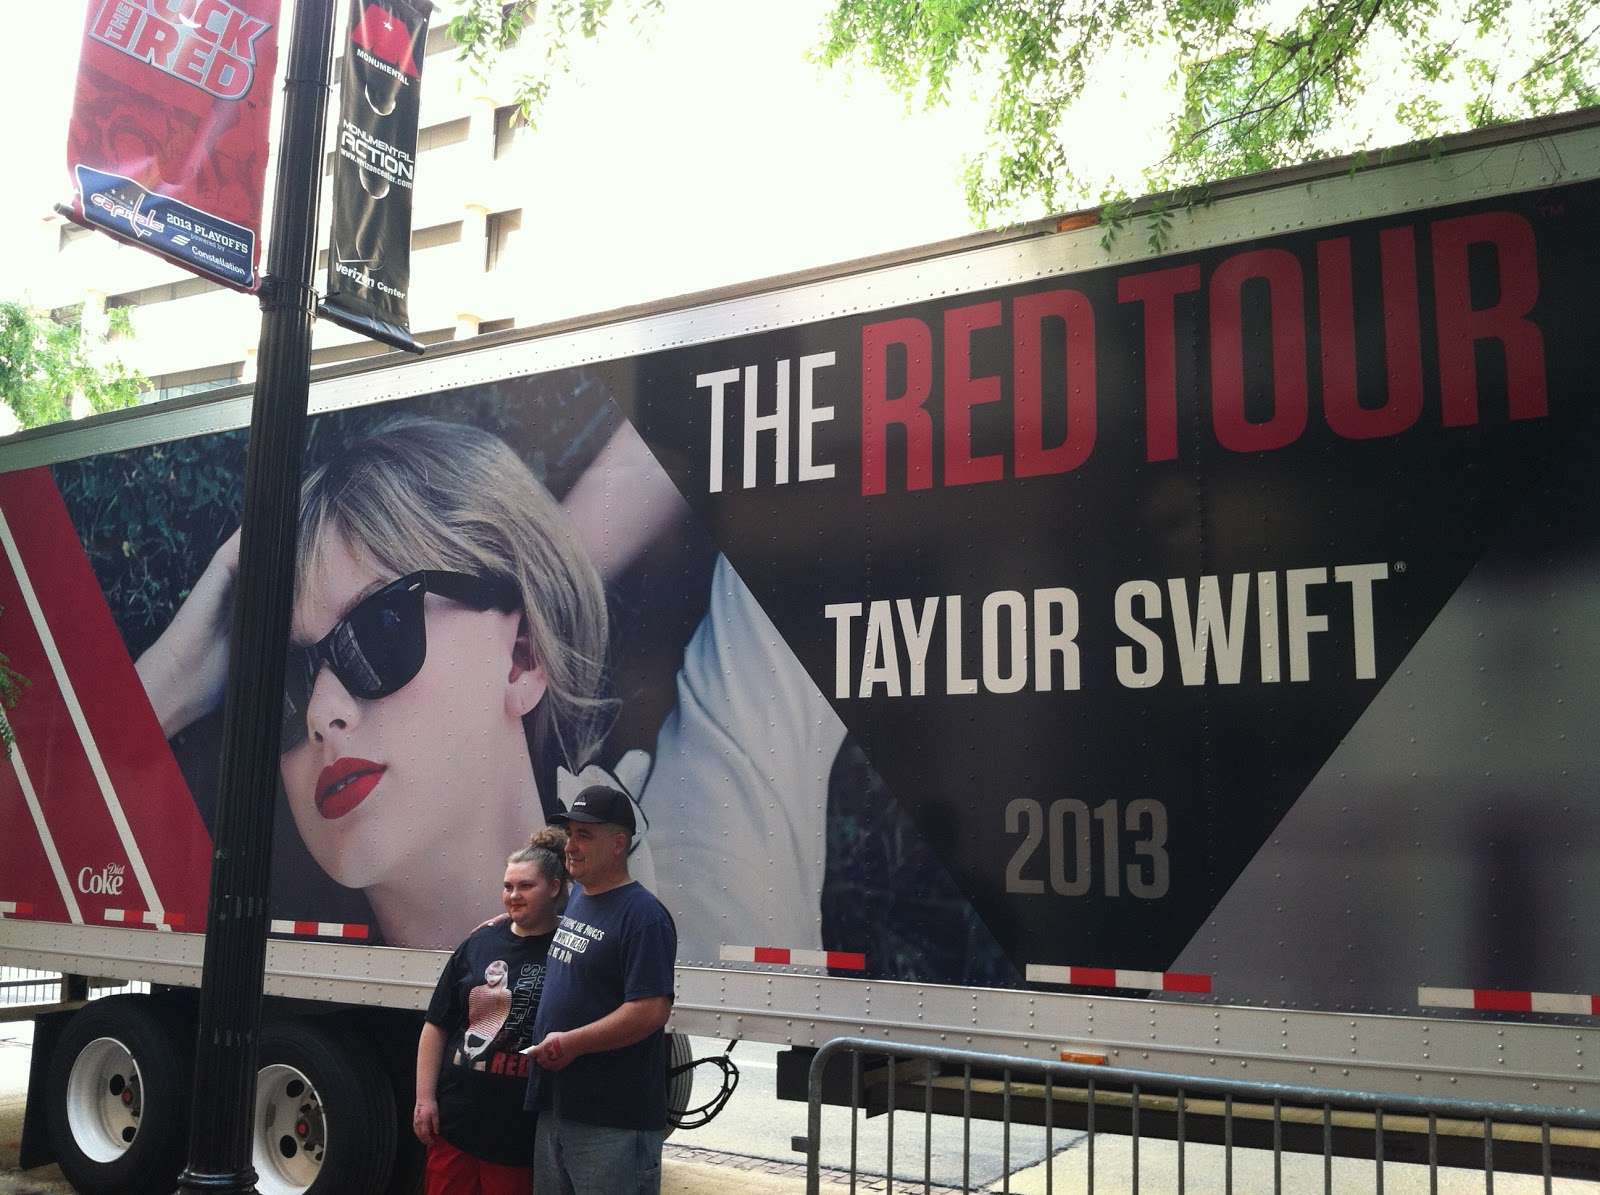 Taylor swift tour bus red